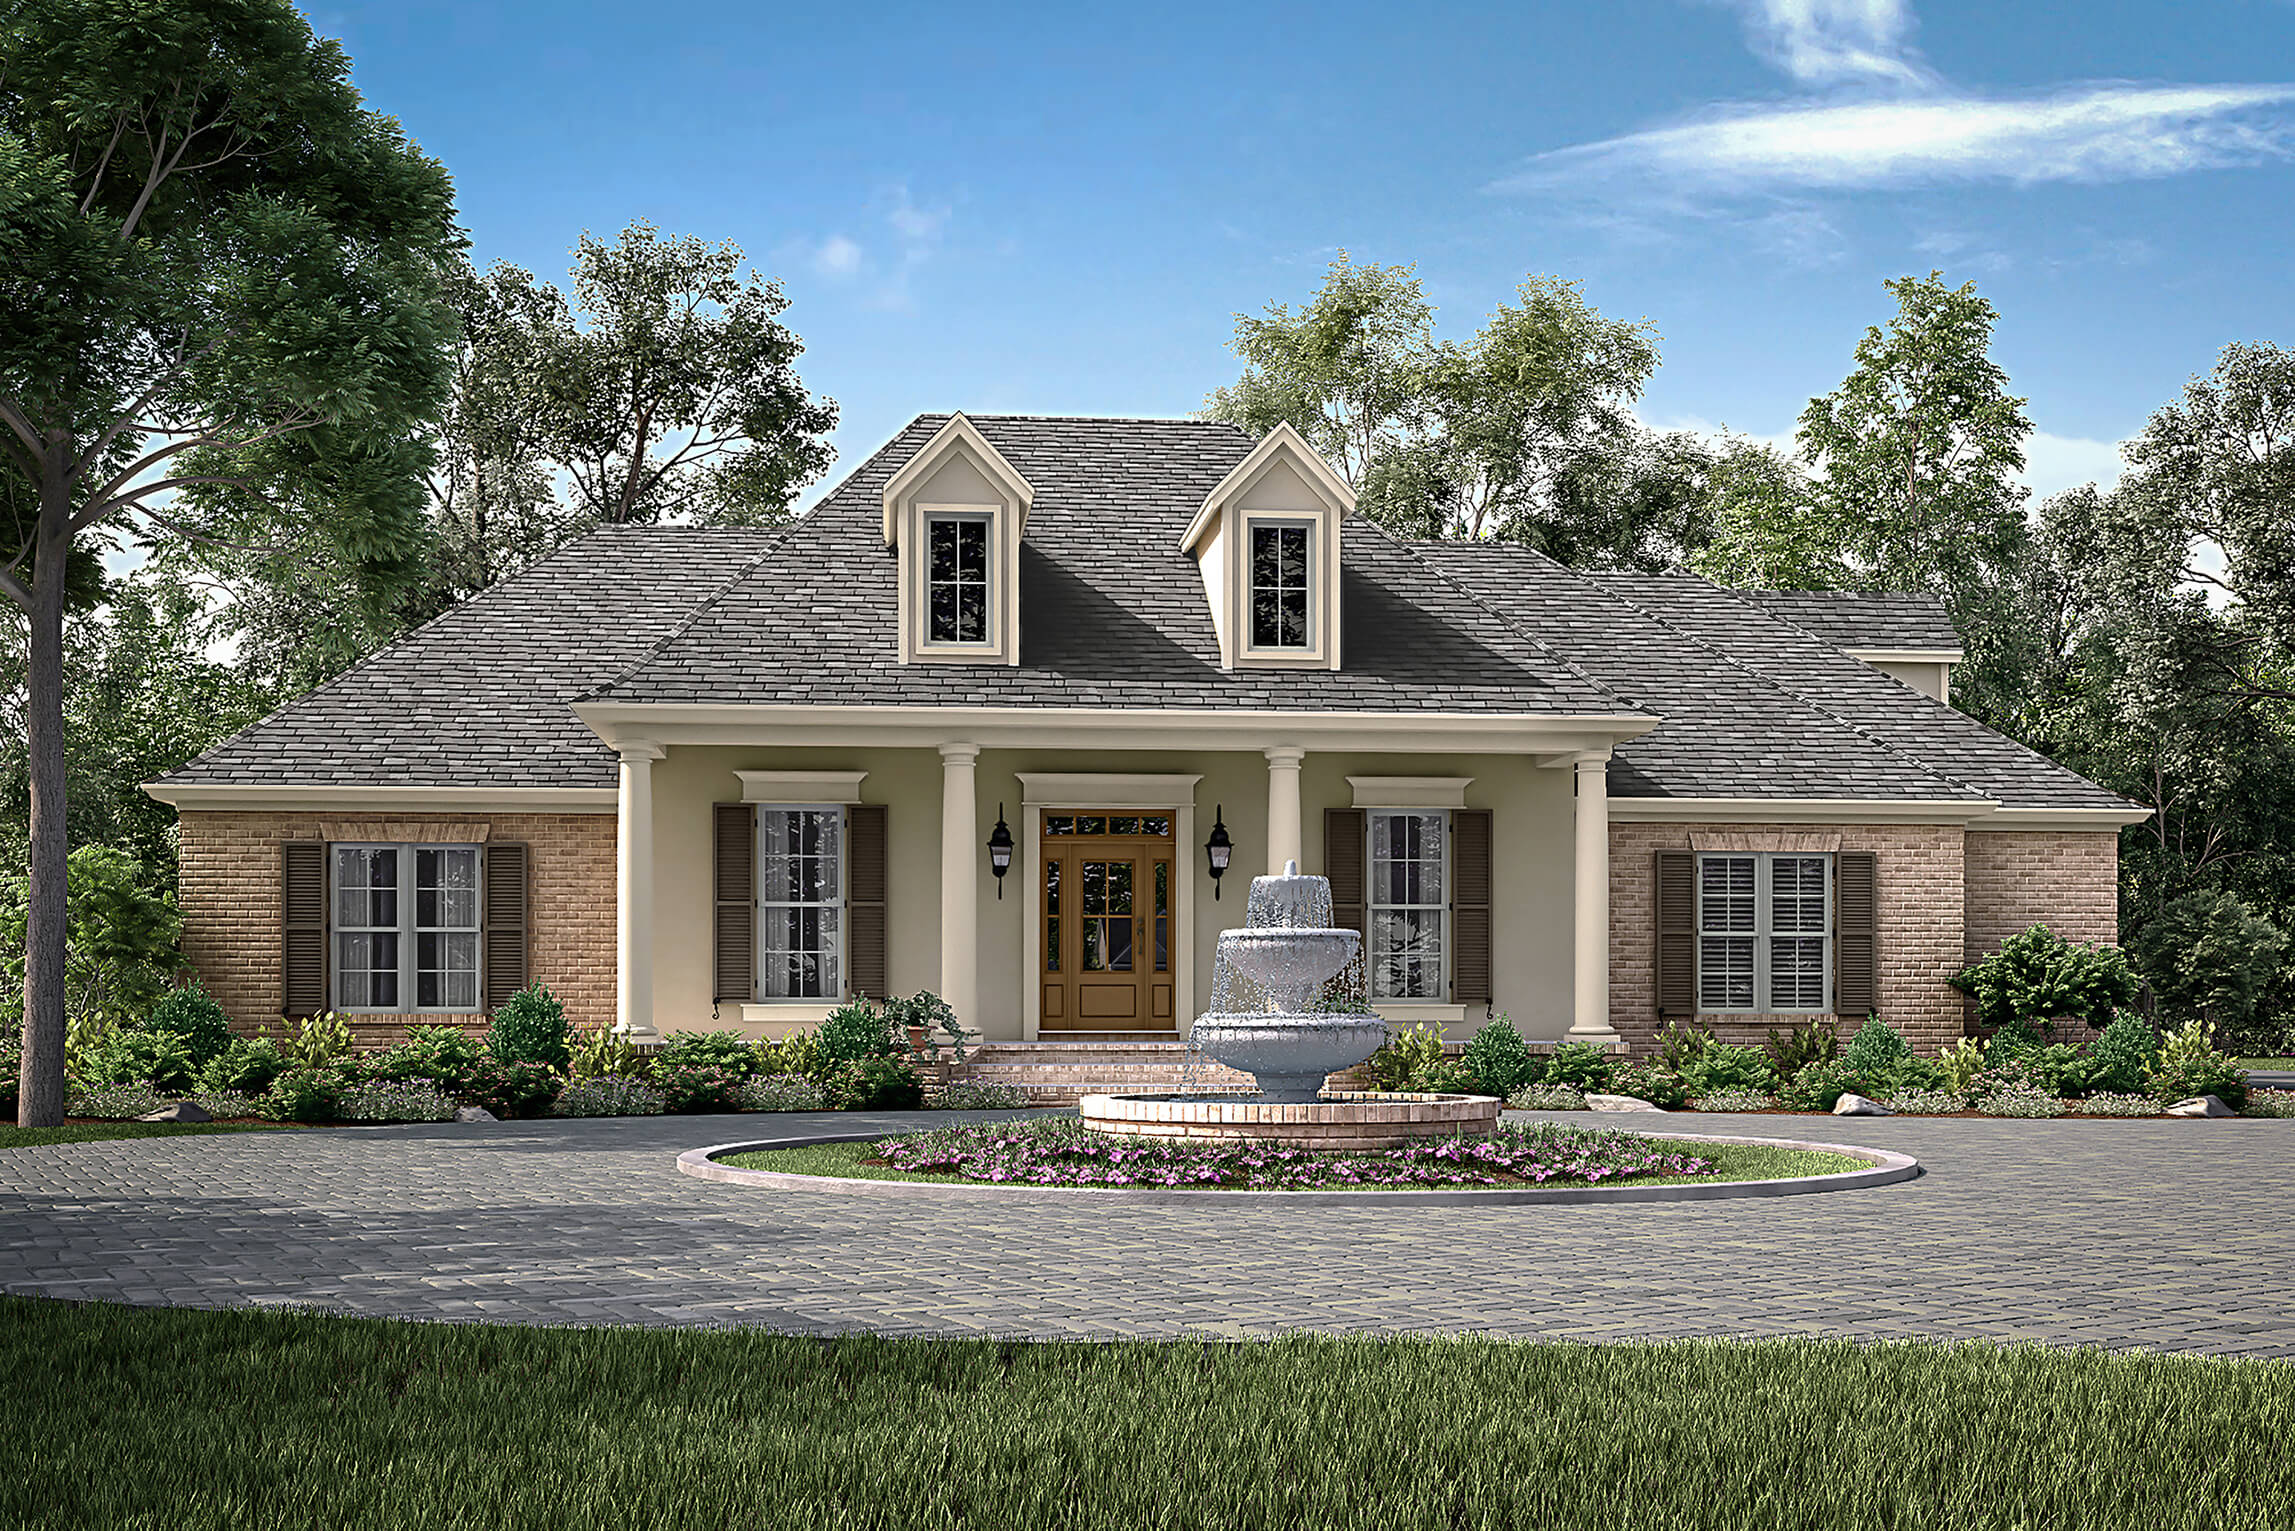 Small house plan home plan 142 -  142 1172 Front Elevation Of Traditional Home Theplancollection House Plan 142 1172